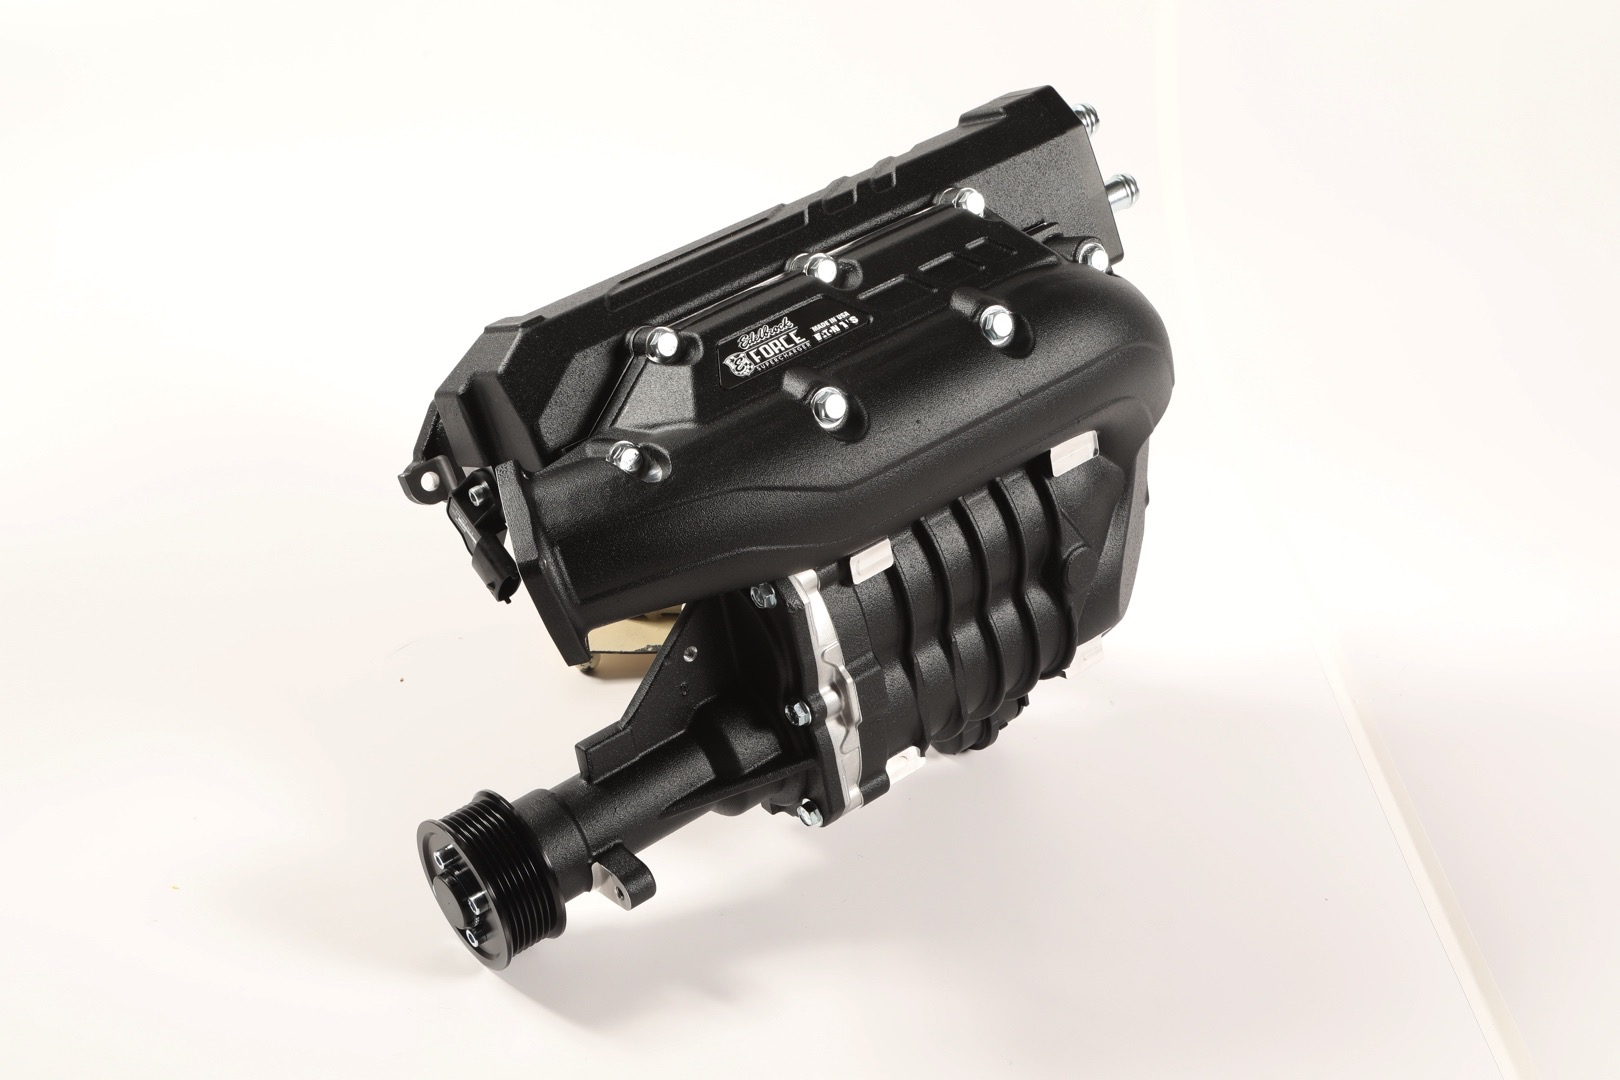 edelbrock mazda mx-5 miata e-force supercharger kit fits under the